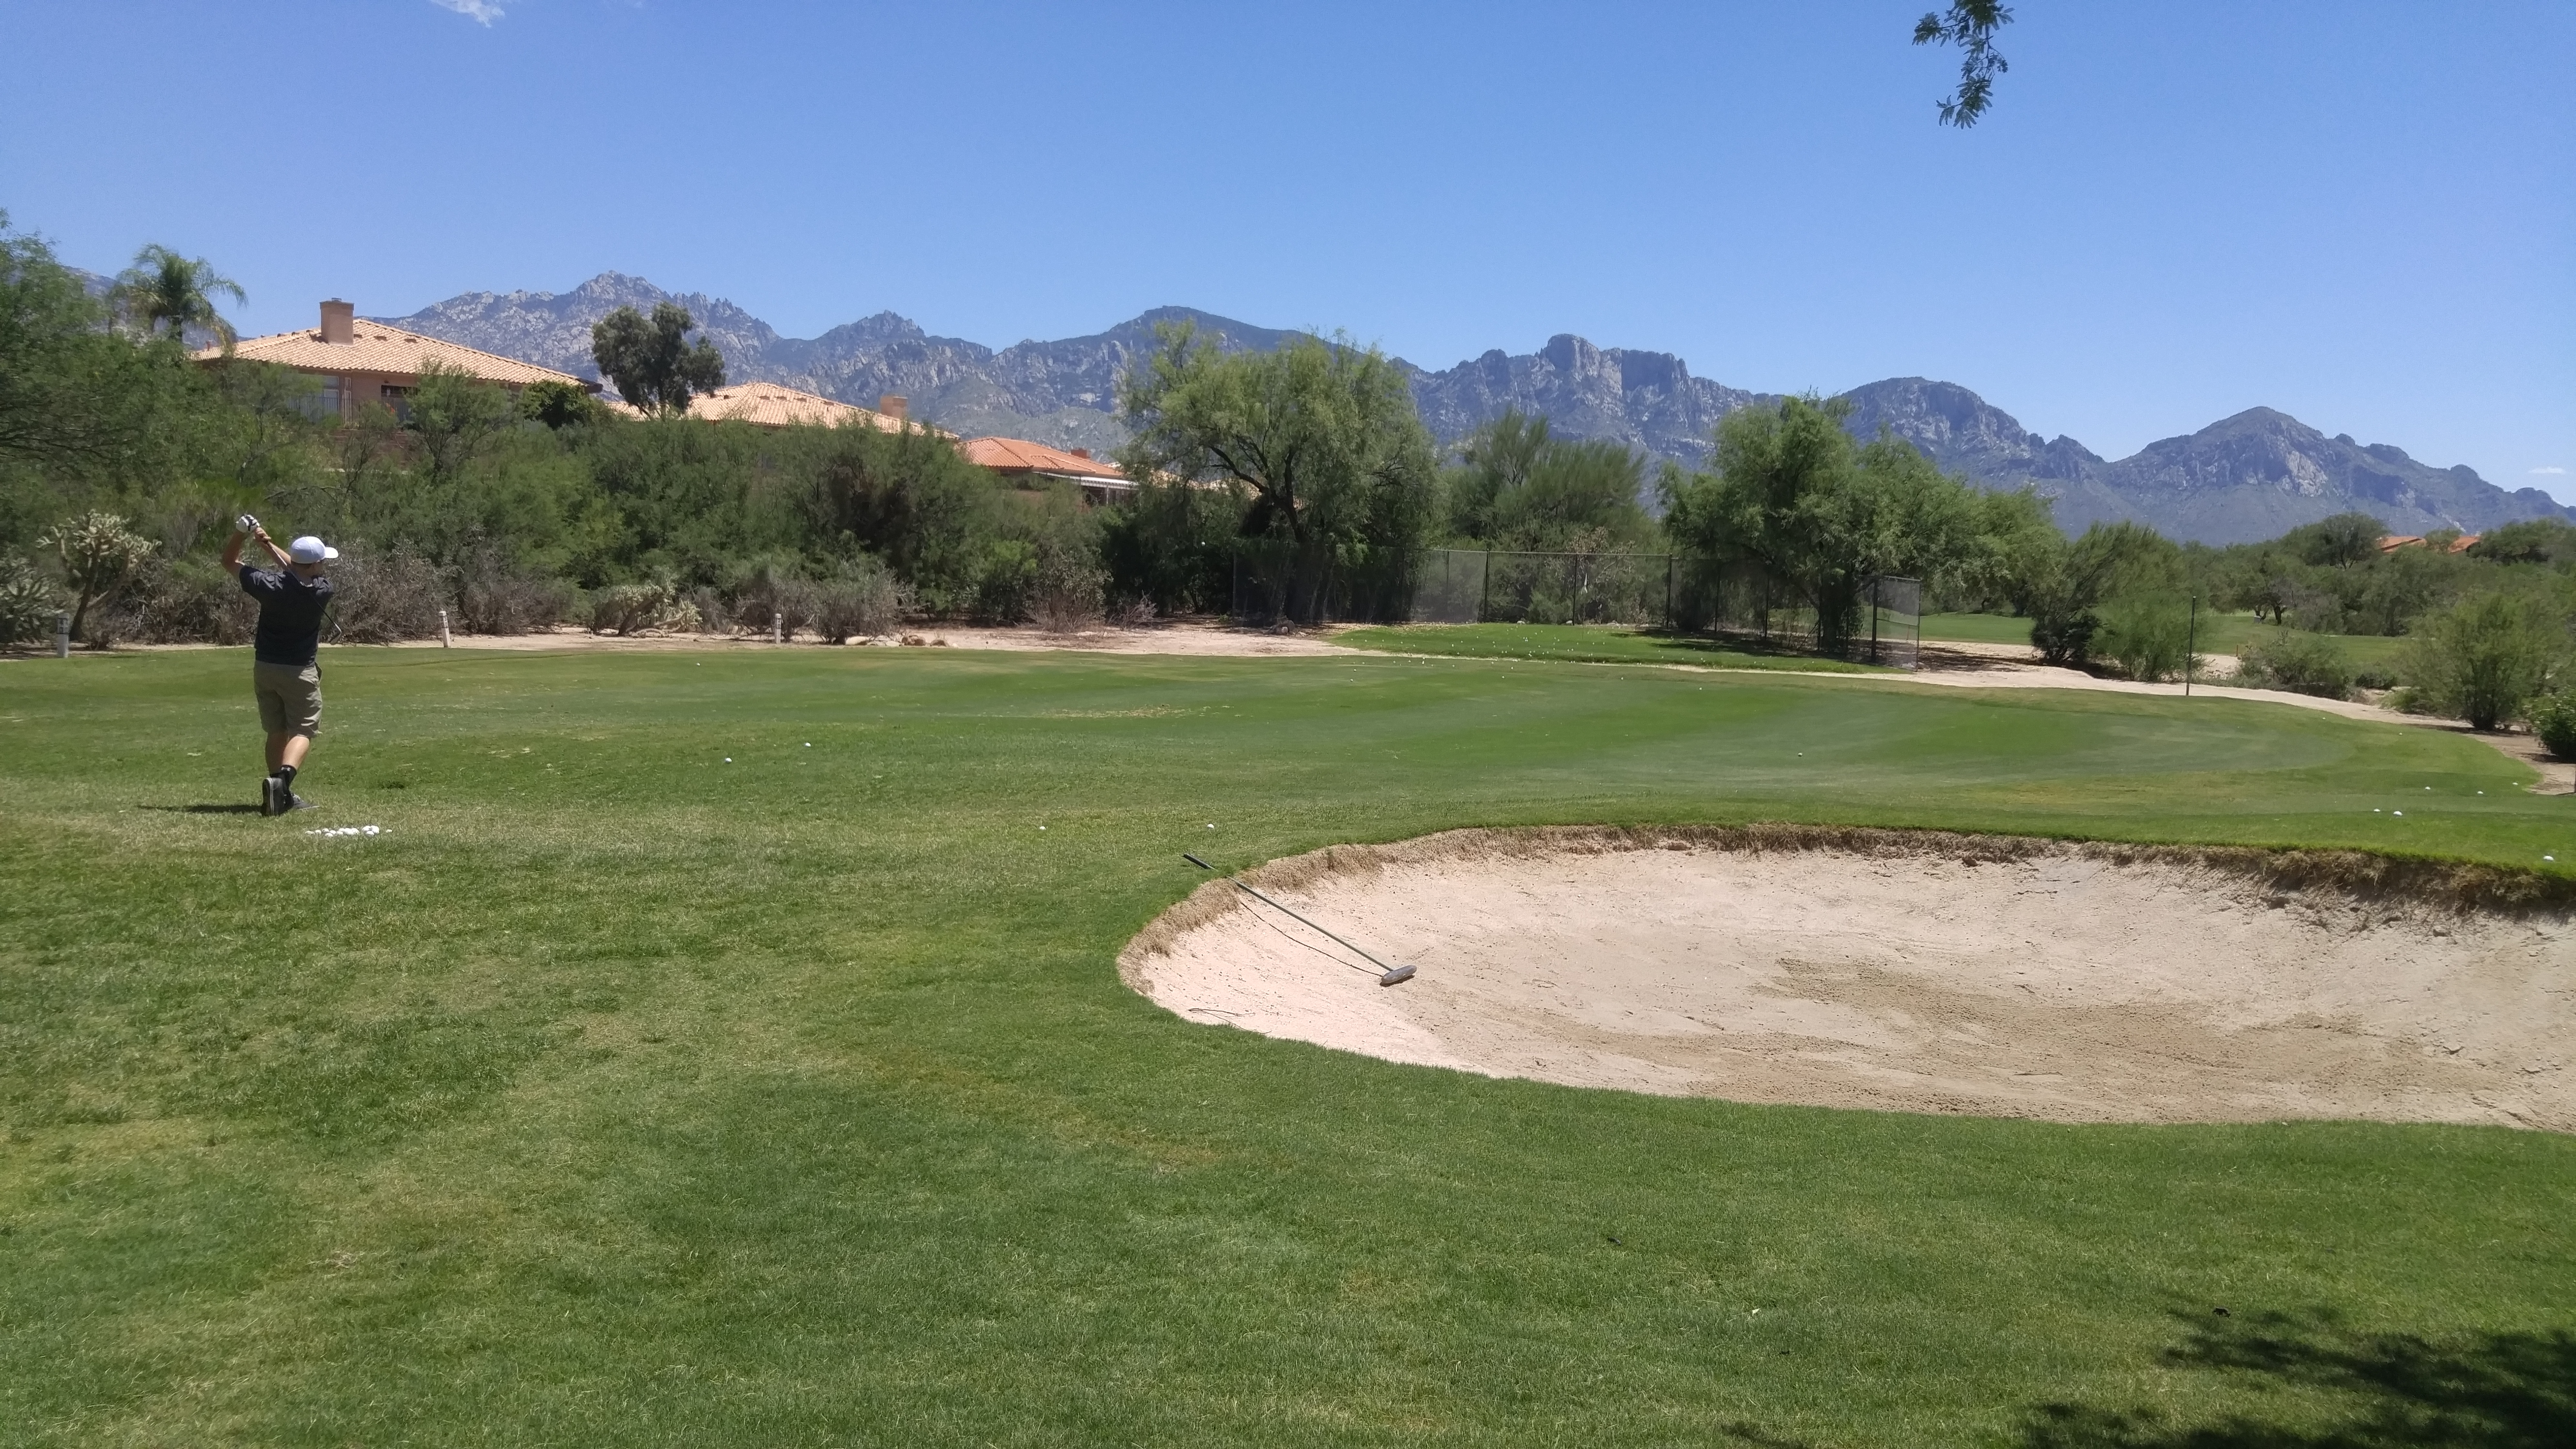 Practice your short game at The Views Golf Club chipping area